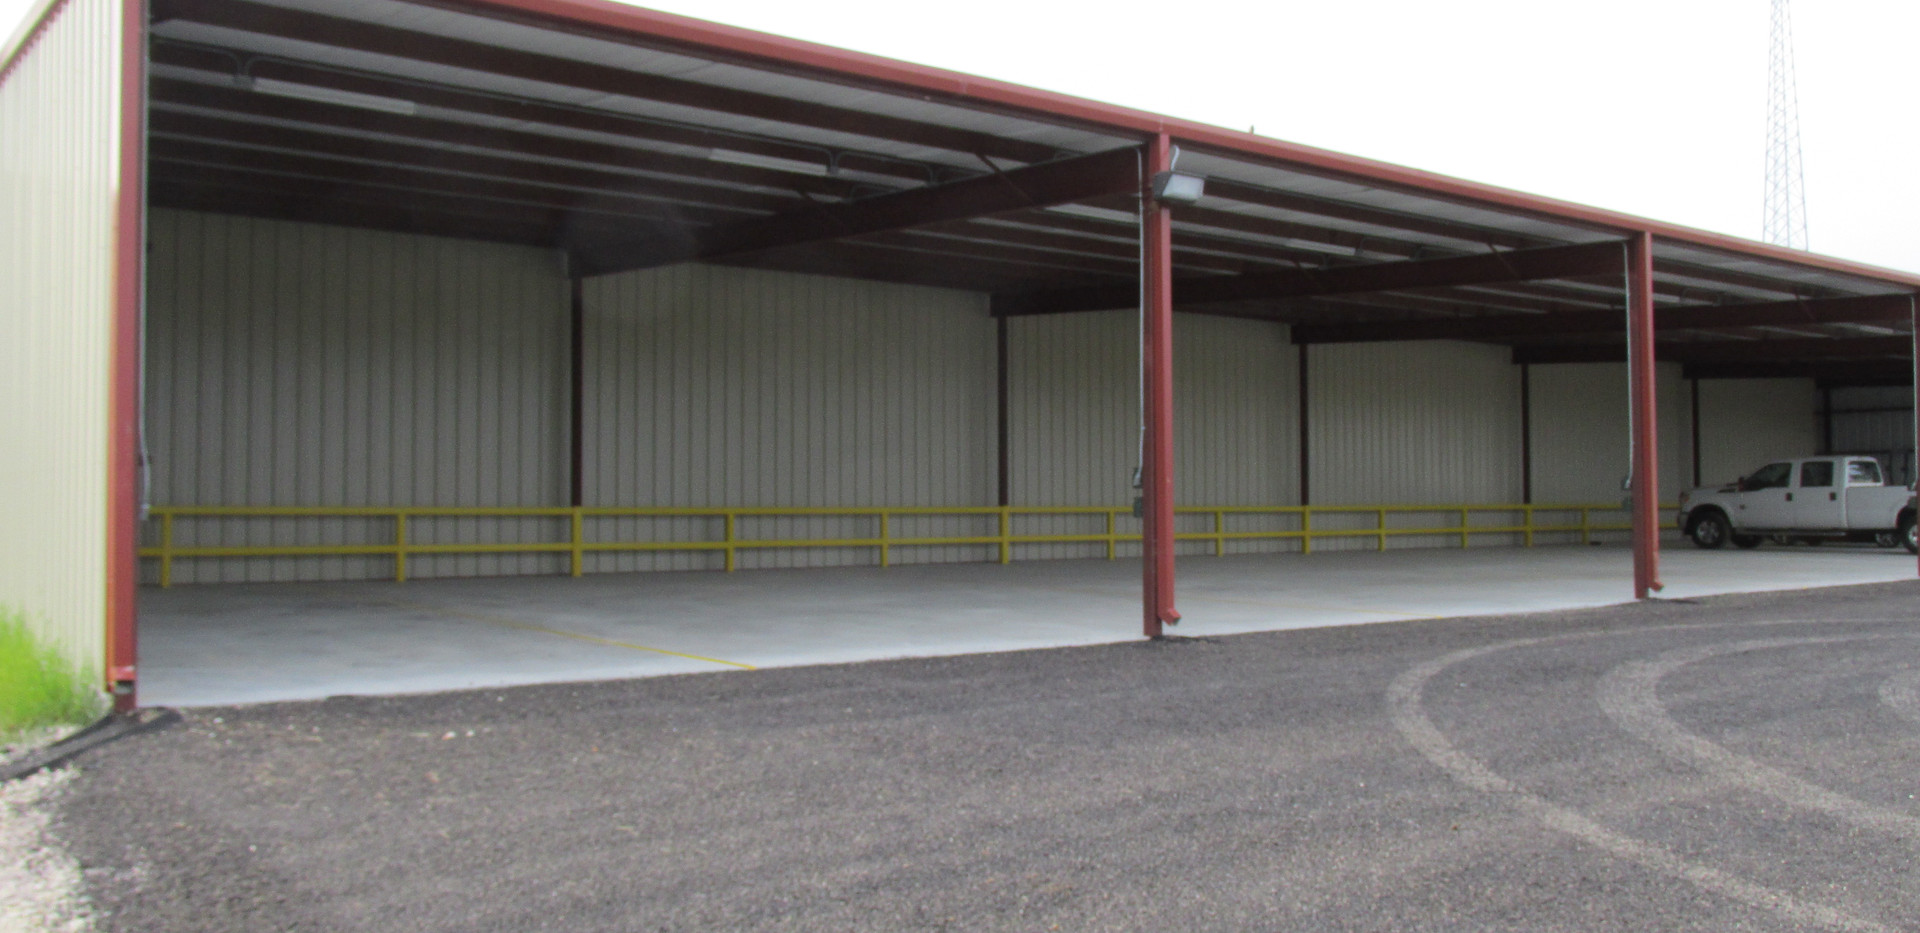 self storage covered parking pic 3.JPG